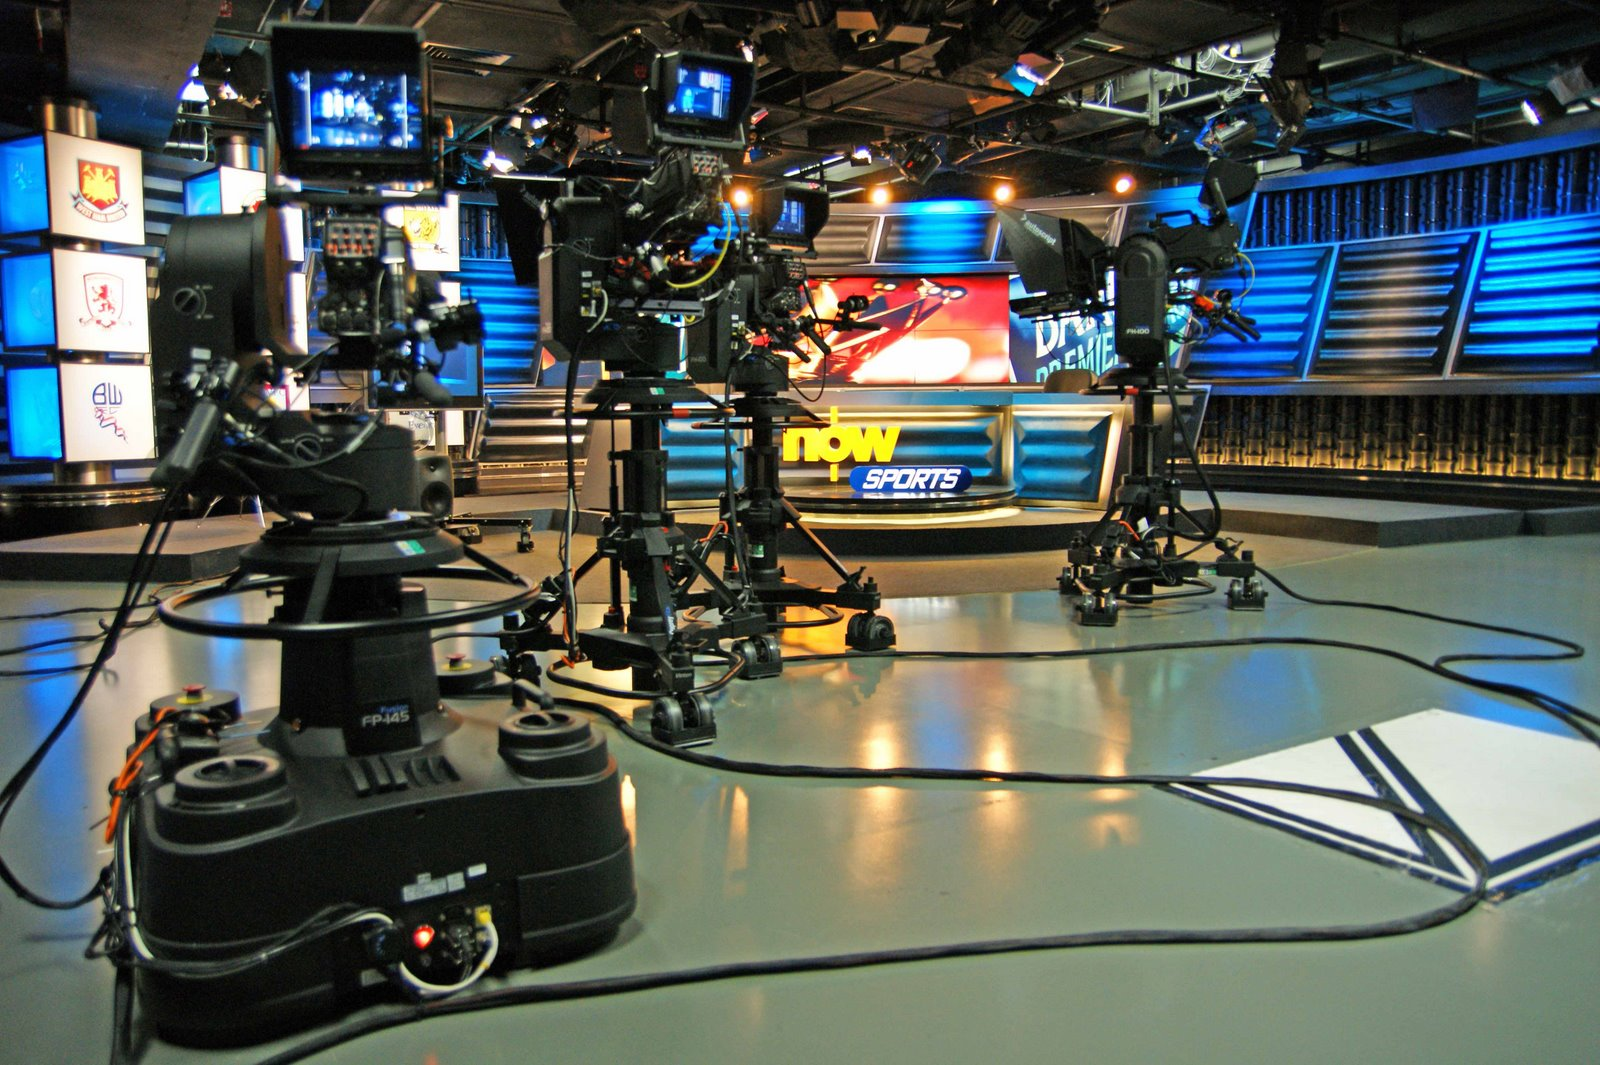 television broadcasting 3663 radio and television broadcasting and communications equipment establishments primarily engaged in manufacturing radio and television broadcasting and communications equipment.